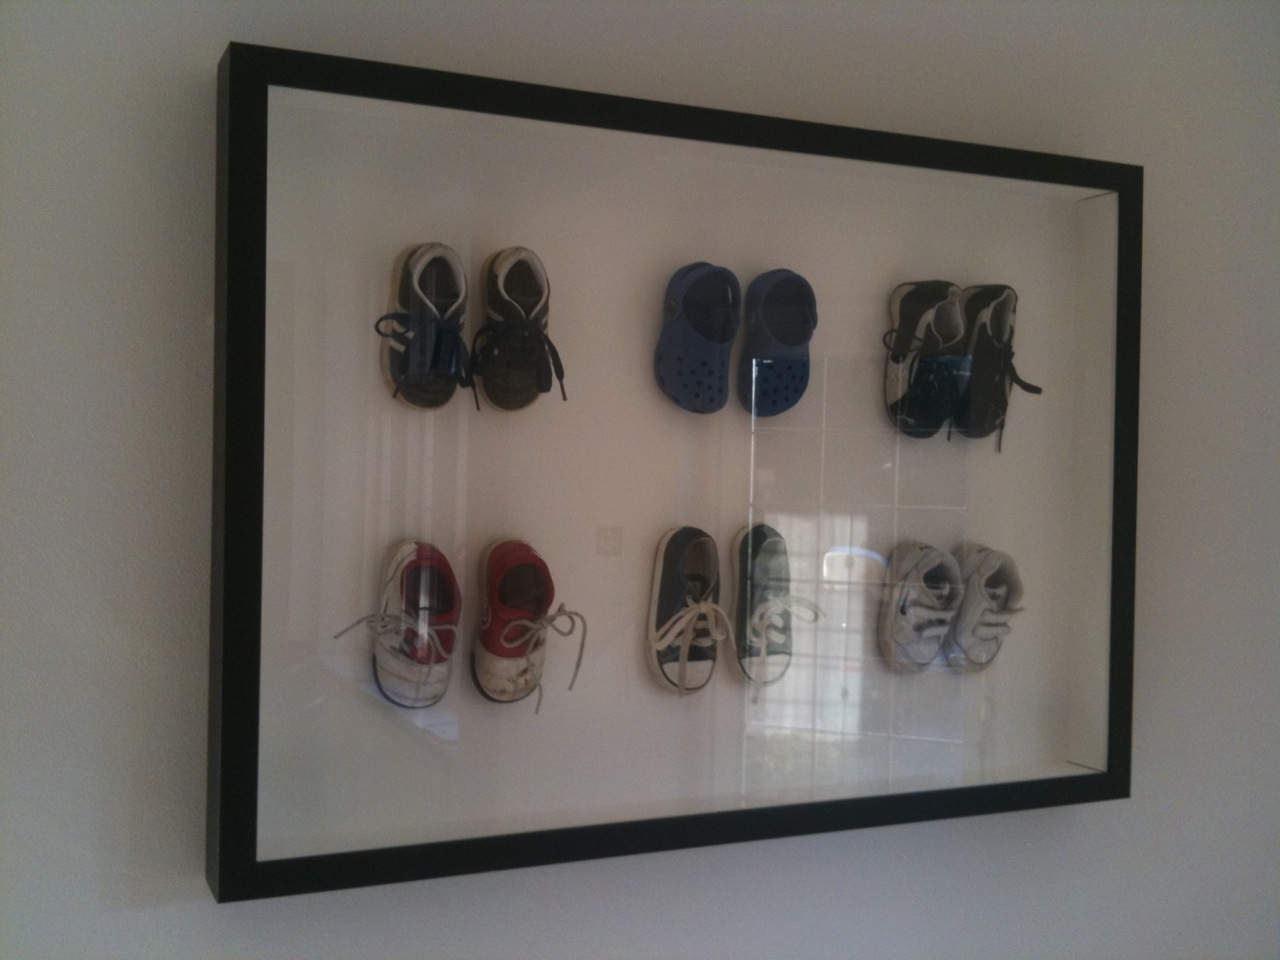 Collection of children's shoes framed by Bespoke Framing